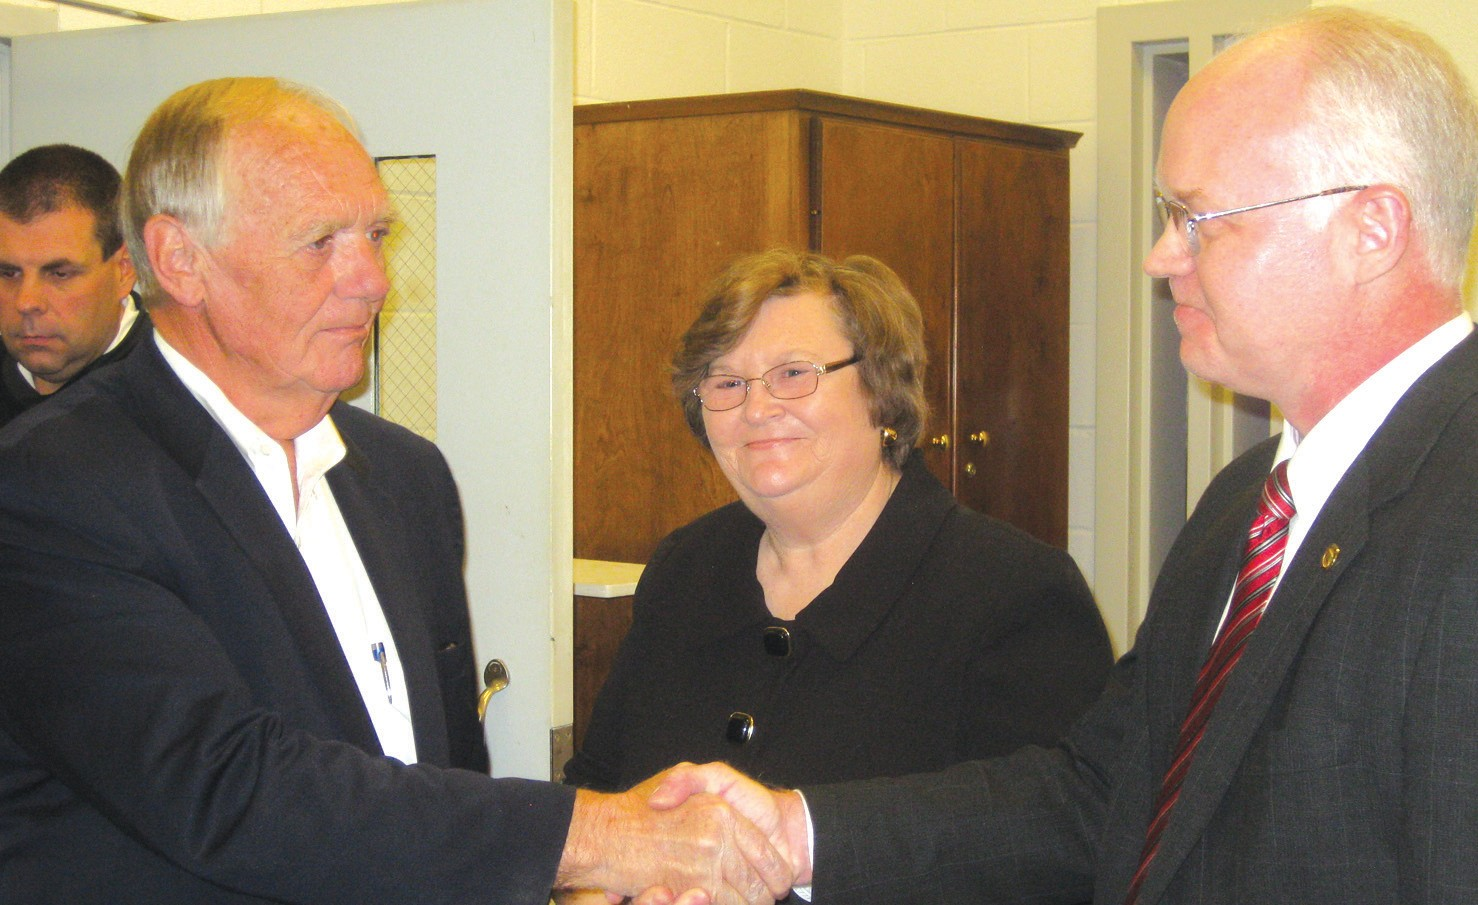 Loyd Arrington (left), is sworn to his first elected term as sheriff of Blount County by Probate Judge David Standridge, as Arrington's wife Norma holds the Bible and beams her approval. Arrington was appointed by the governor two years ago to fill the unexpired term of former Sheriff Danny Morton. He was elected easily in his own right last November. Minutes after this photo was taken, some 30 deputies attending the crowded event were themselves sworn in a mass ceremony.